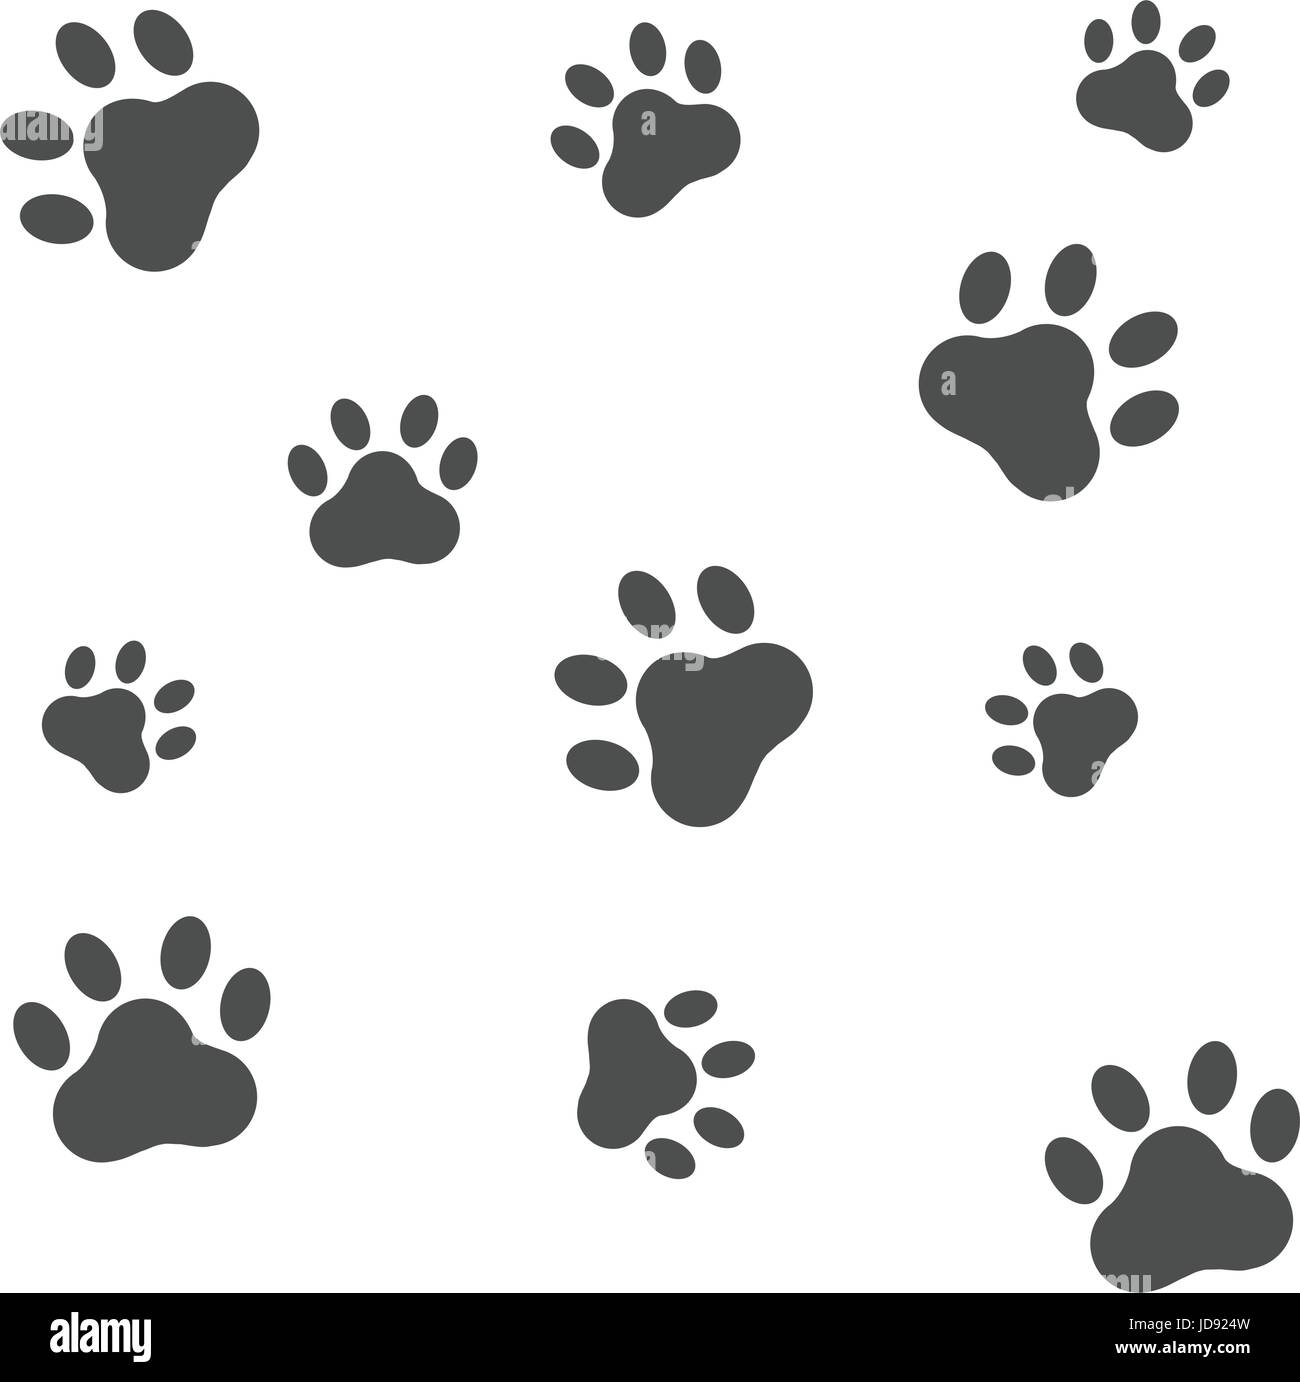 89b8a673c8c4 Dog footprint icon isolated on white background; Paws vector illustration -  Stock Image